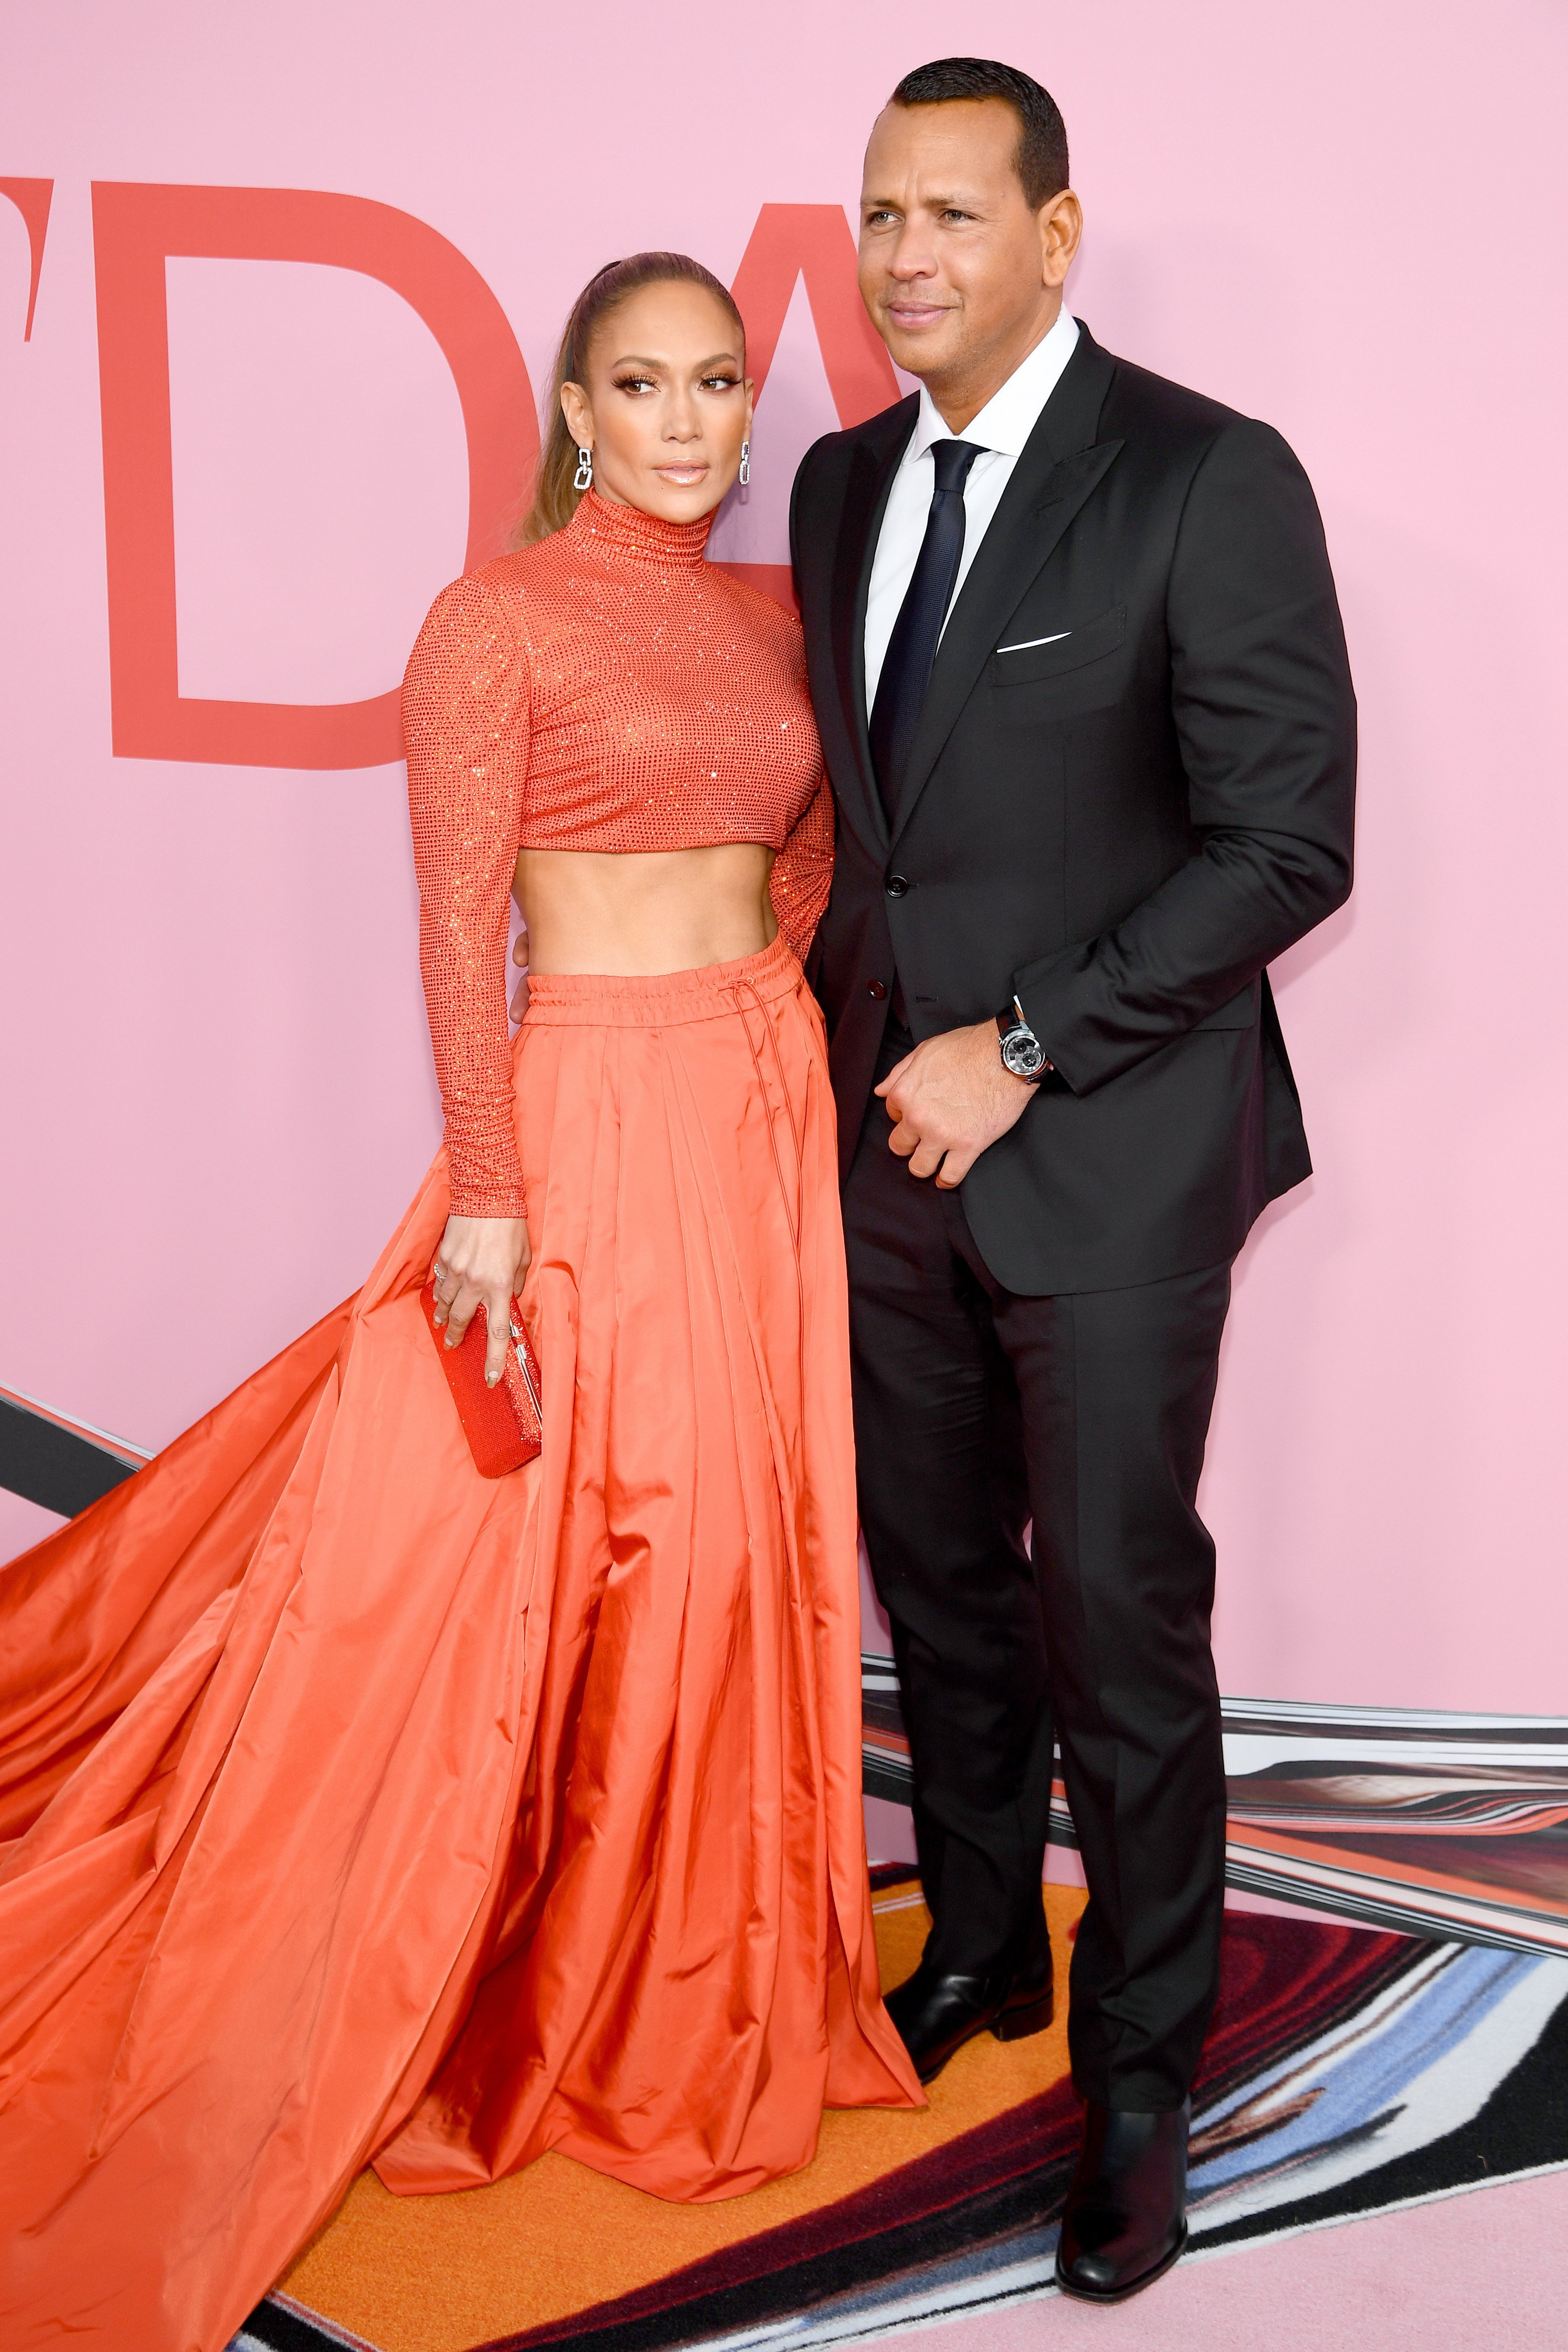 Jennifer Lopez and Alex Rodriguez at the CFDA Fashion Awards on June 03, 2019 in New York City | Photo: Getty Images